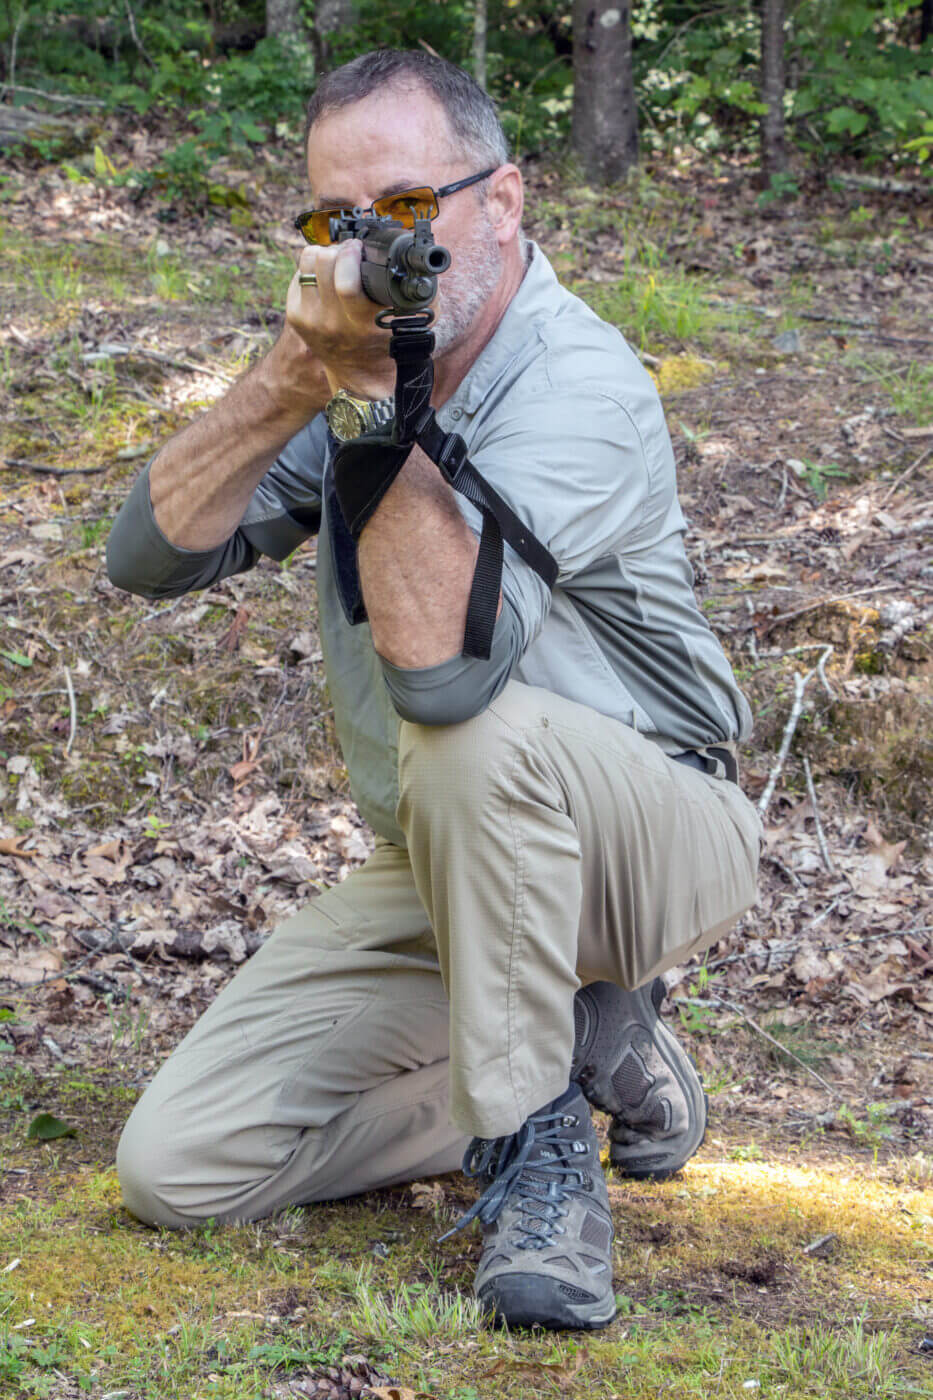 Man instructs how to shoot a rifle from a kneeling position